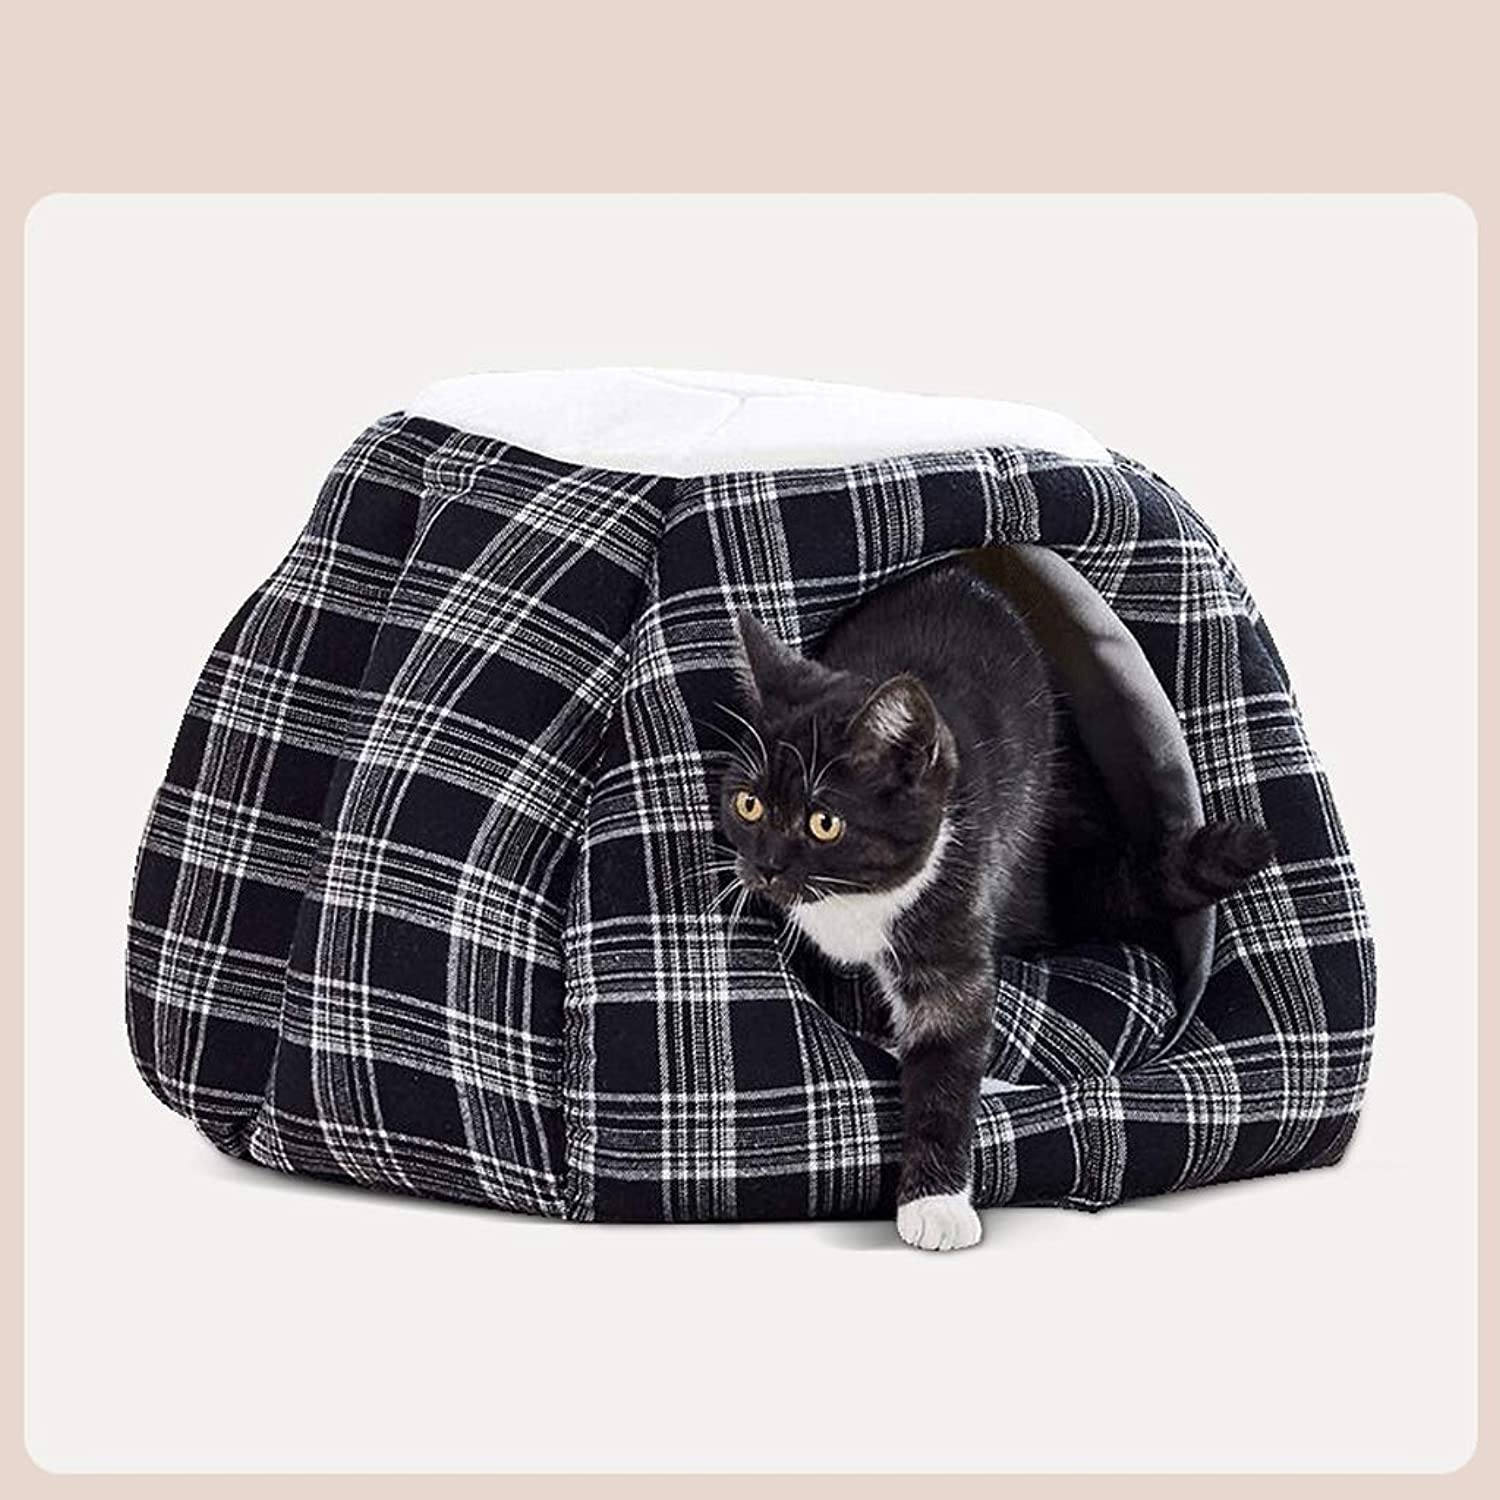 JSSFQK Four Seasons Universal Cat Room Plaid Cloth Cat Sofa Pumpkin Shape, Four Seasons Universal, Suitable For Cats Within 7.5kg pet bed